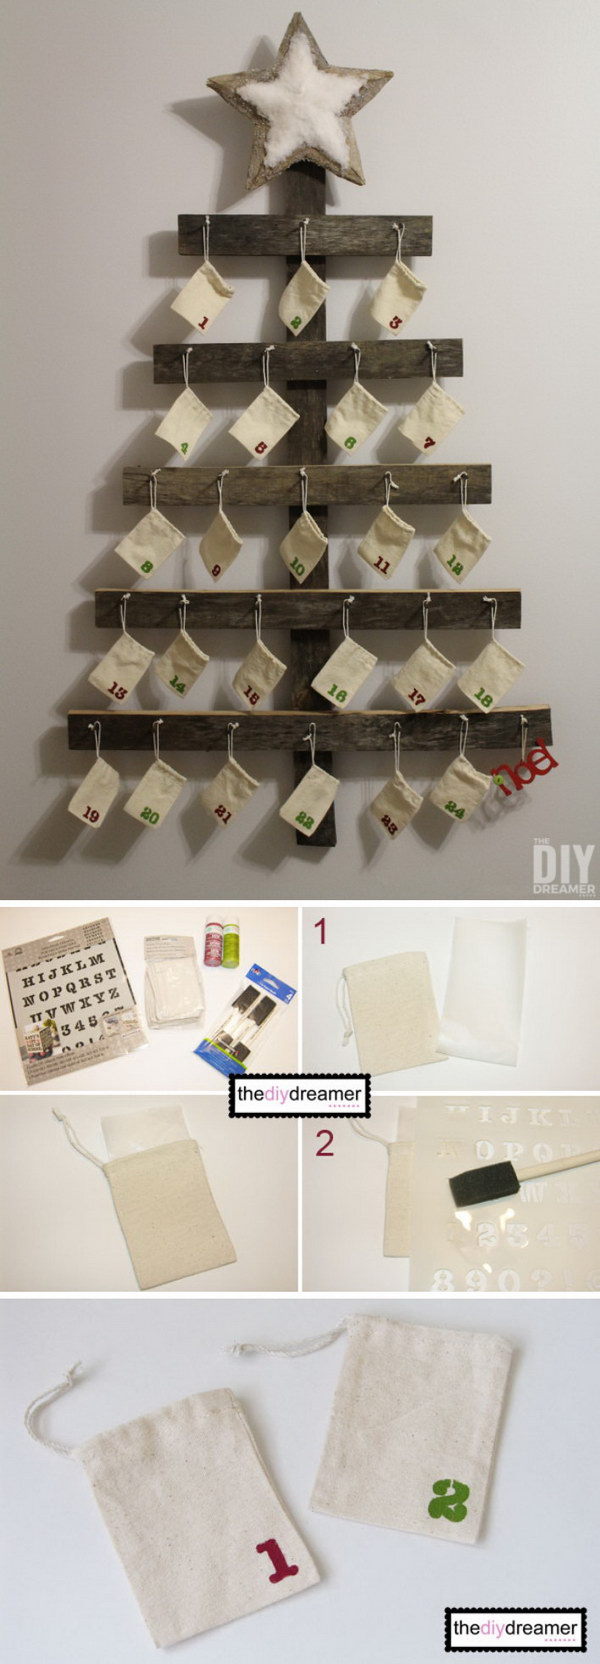 Diy Calendar Ideas : Diy rustic christmas decoration ideas tutorials